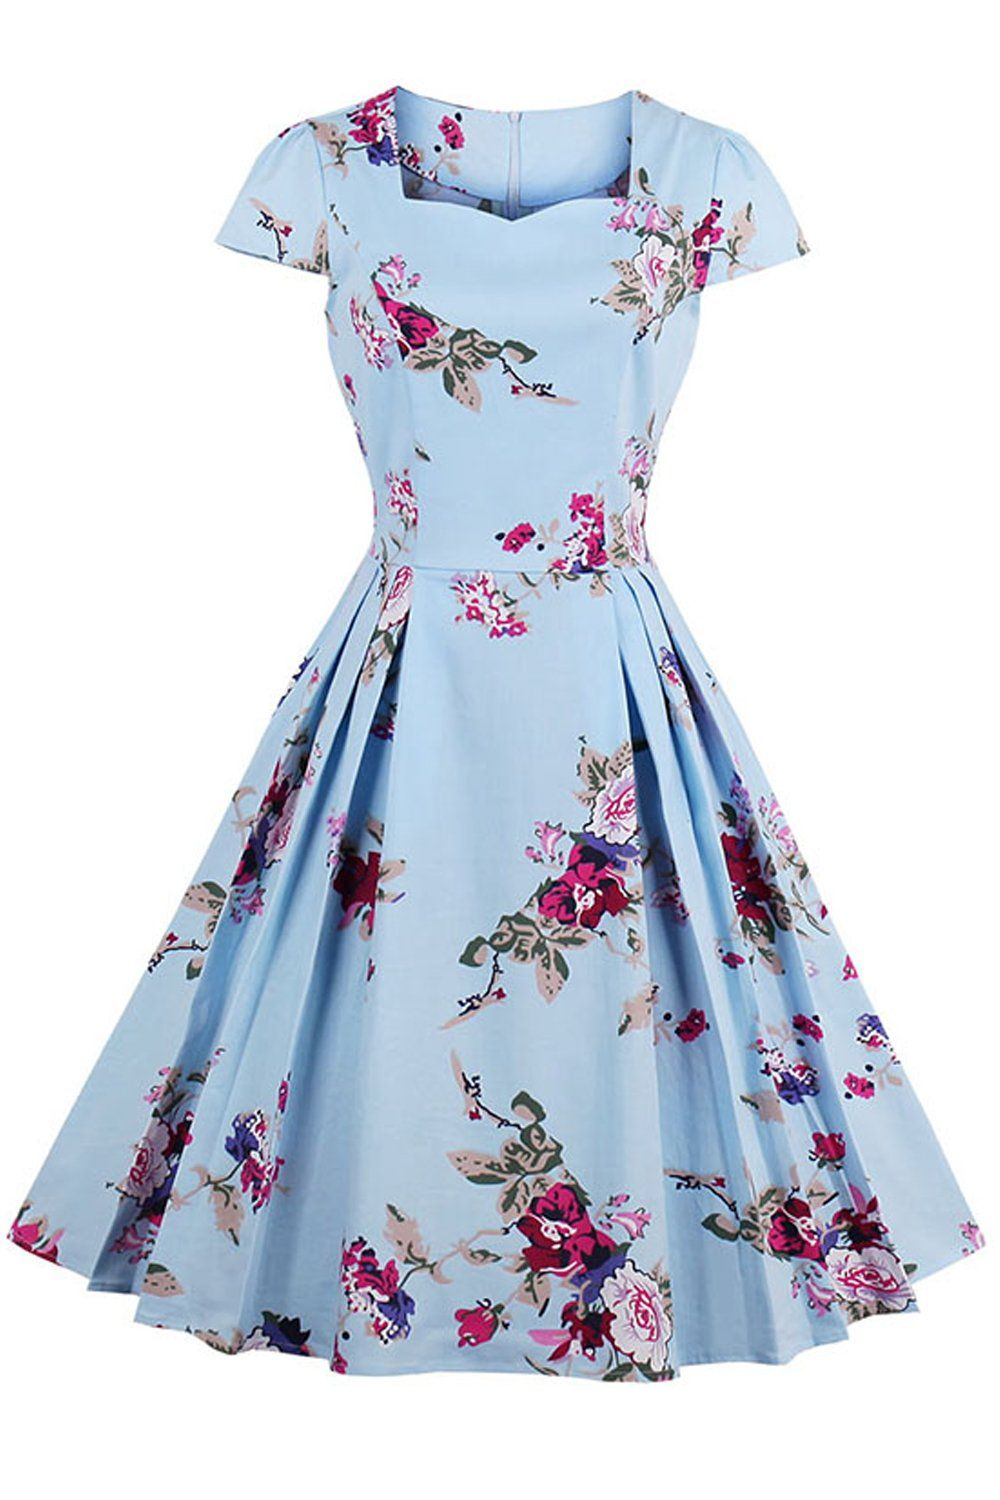 2020 Women Dress Casual Dress Print Pinafore Dress Casual Summer Dresses With Sleeves